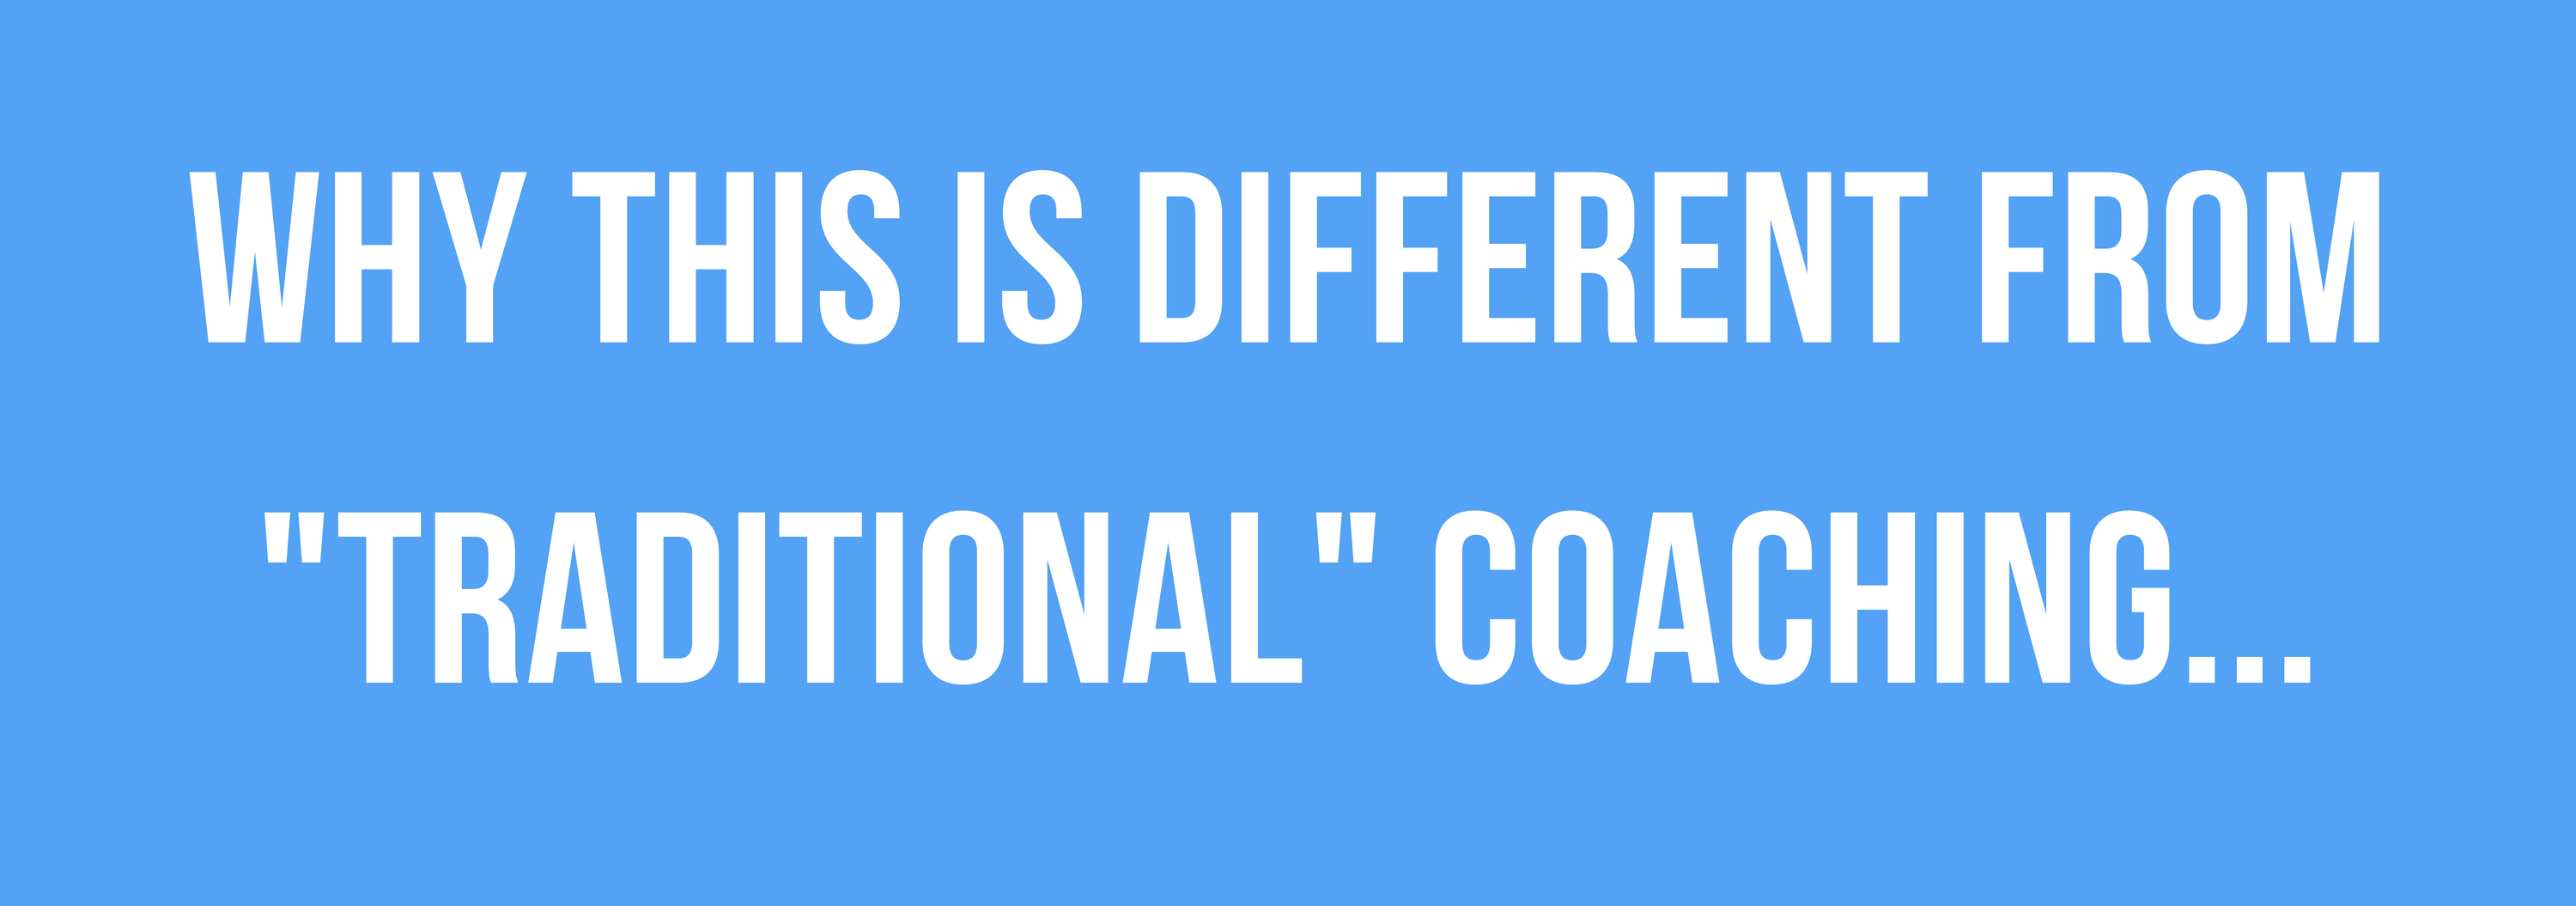 coaching work it daily our brand new work it daily career coaching subscription will allow you to work a team of trained career coaches who are happy to help you work through